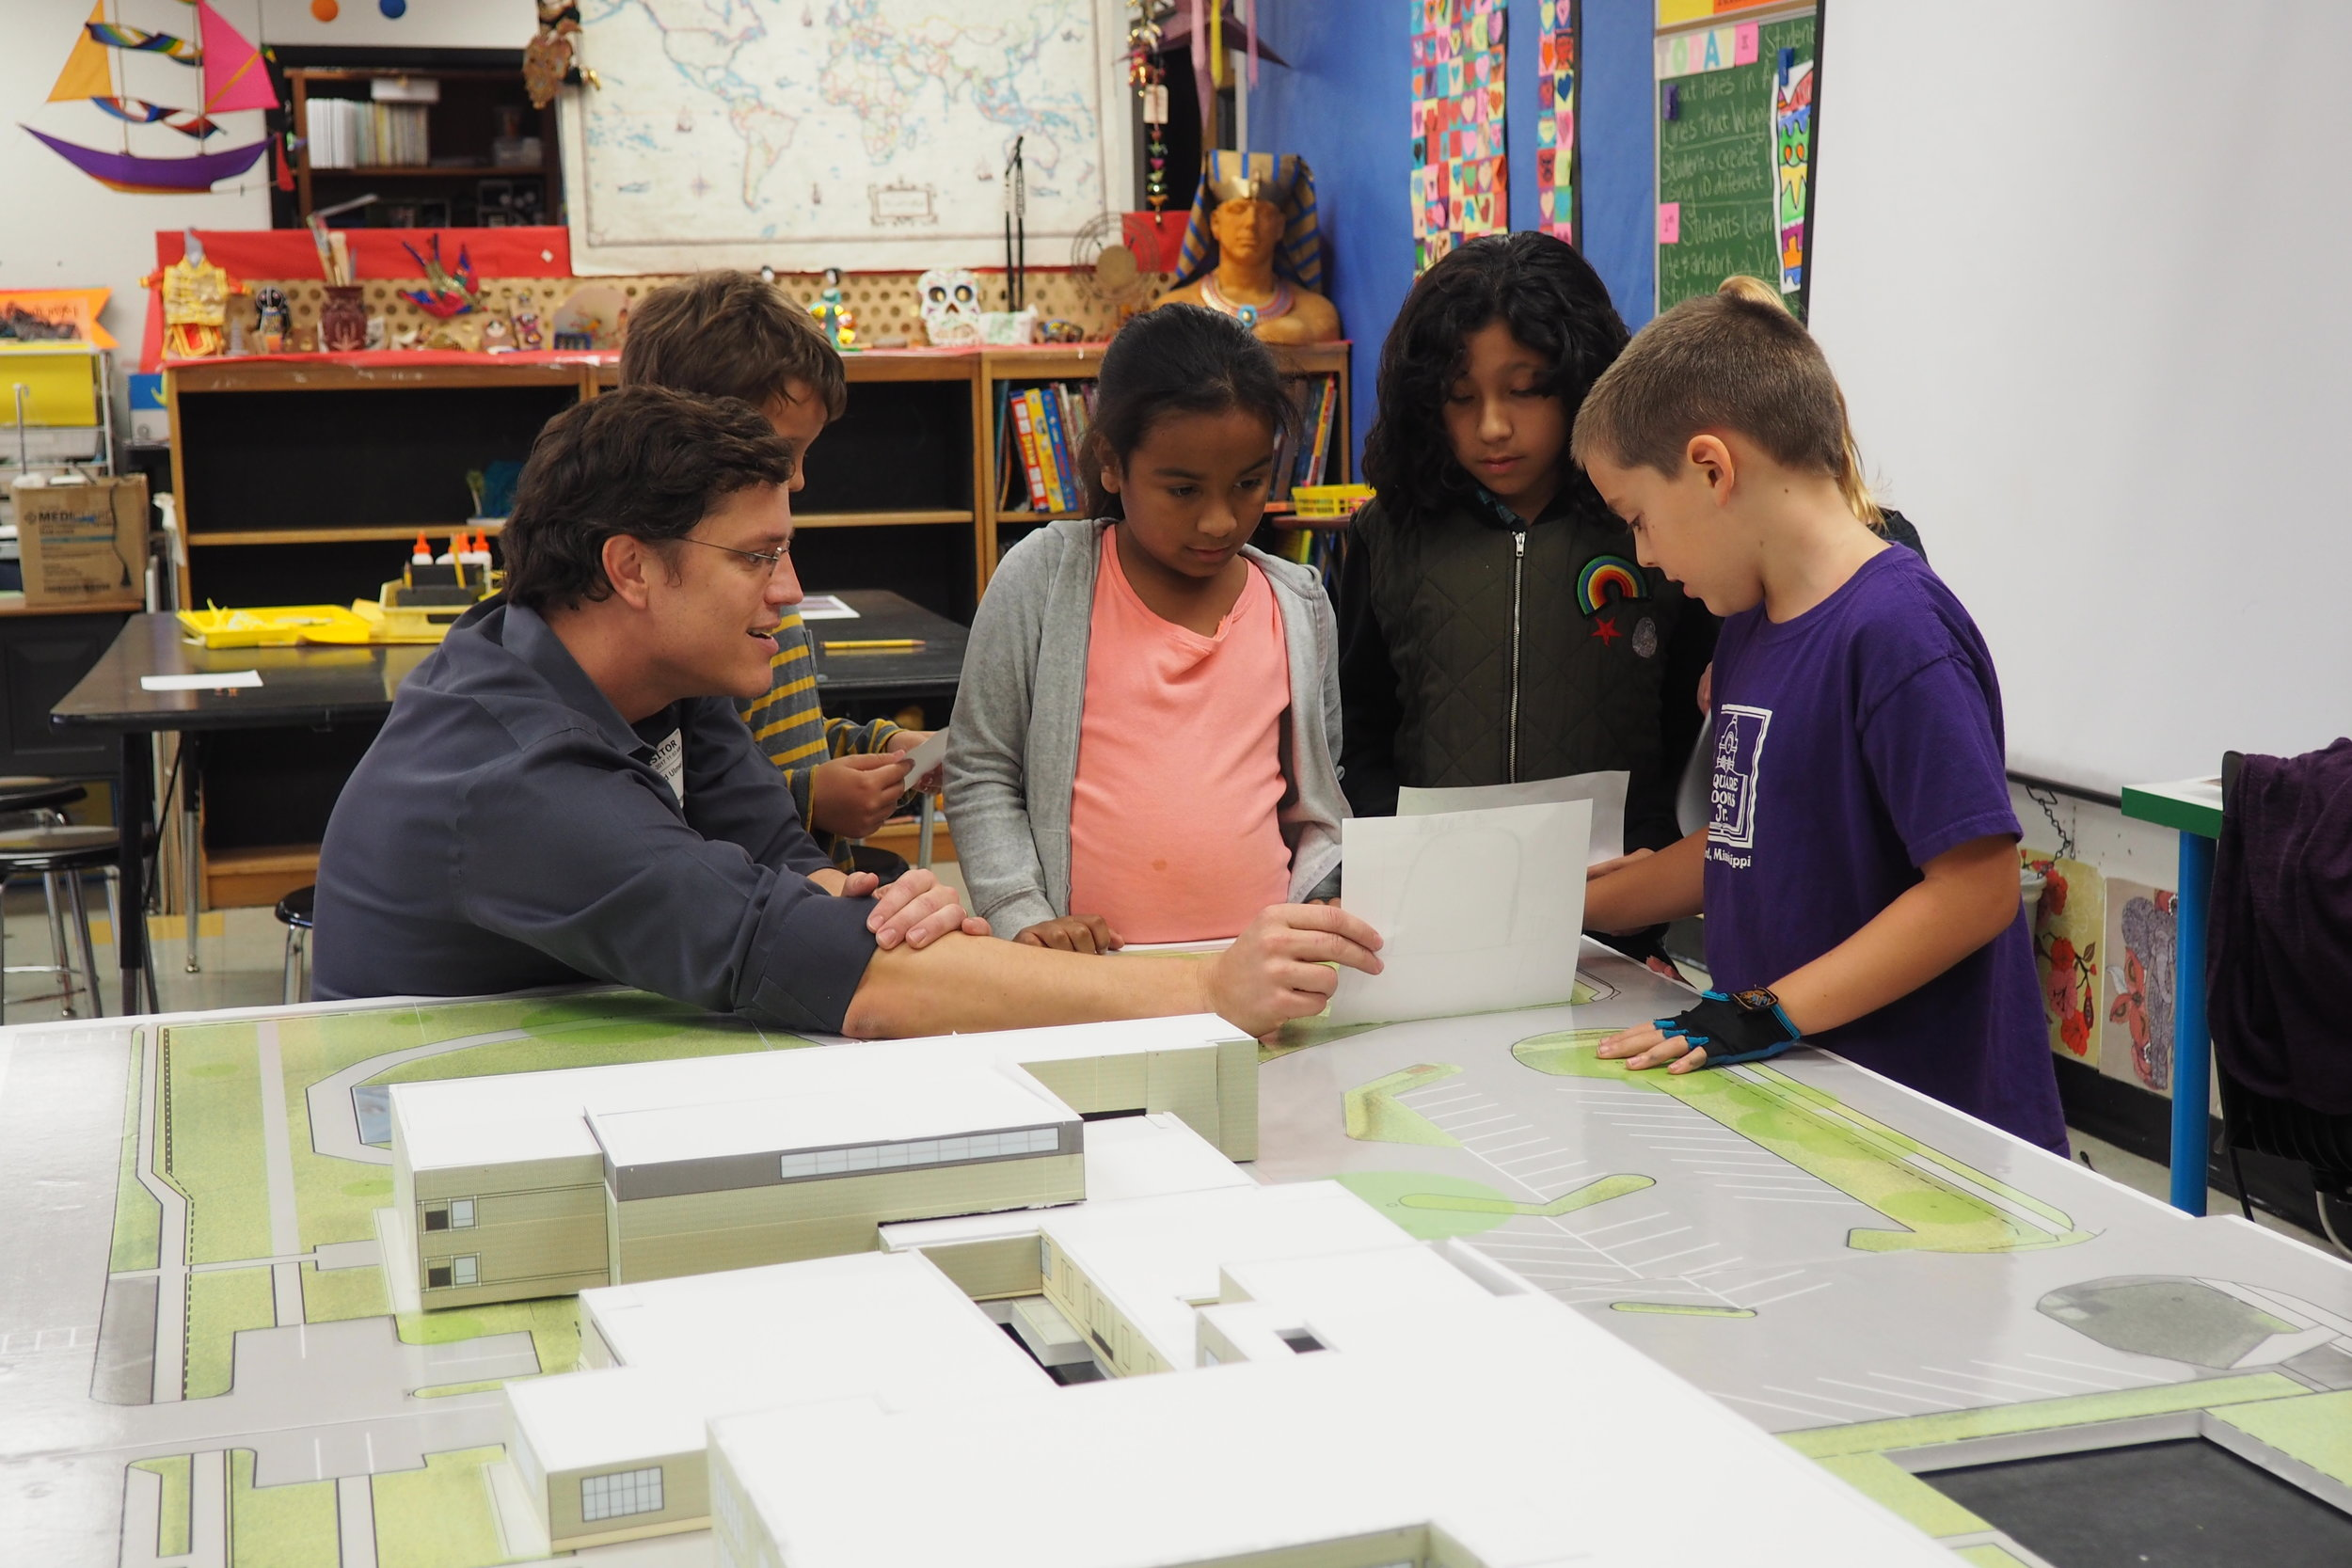 Volunteer Architect, Leland Ulmer, works with a group of Blackshear students to analyze their selected site and discuss existing conditions.